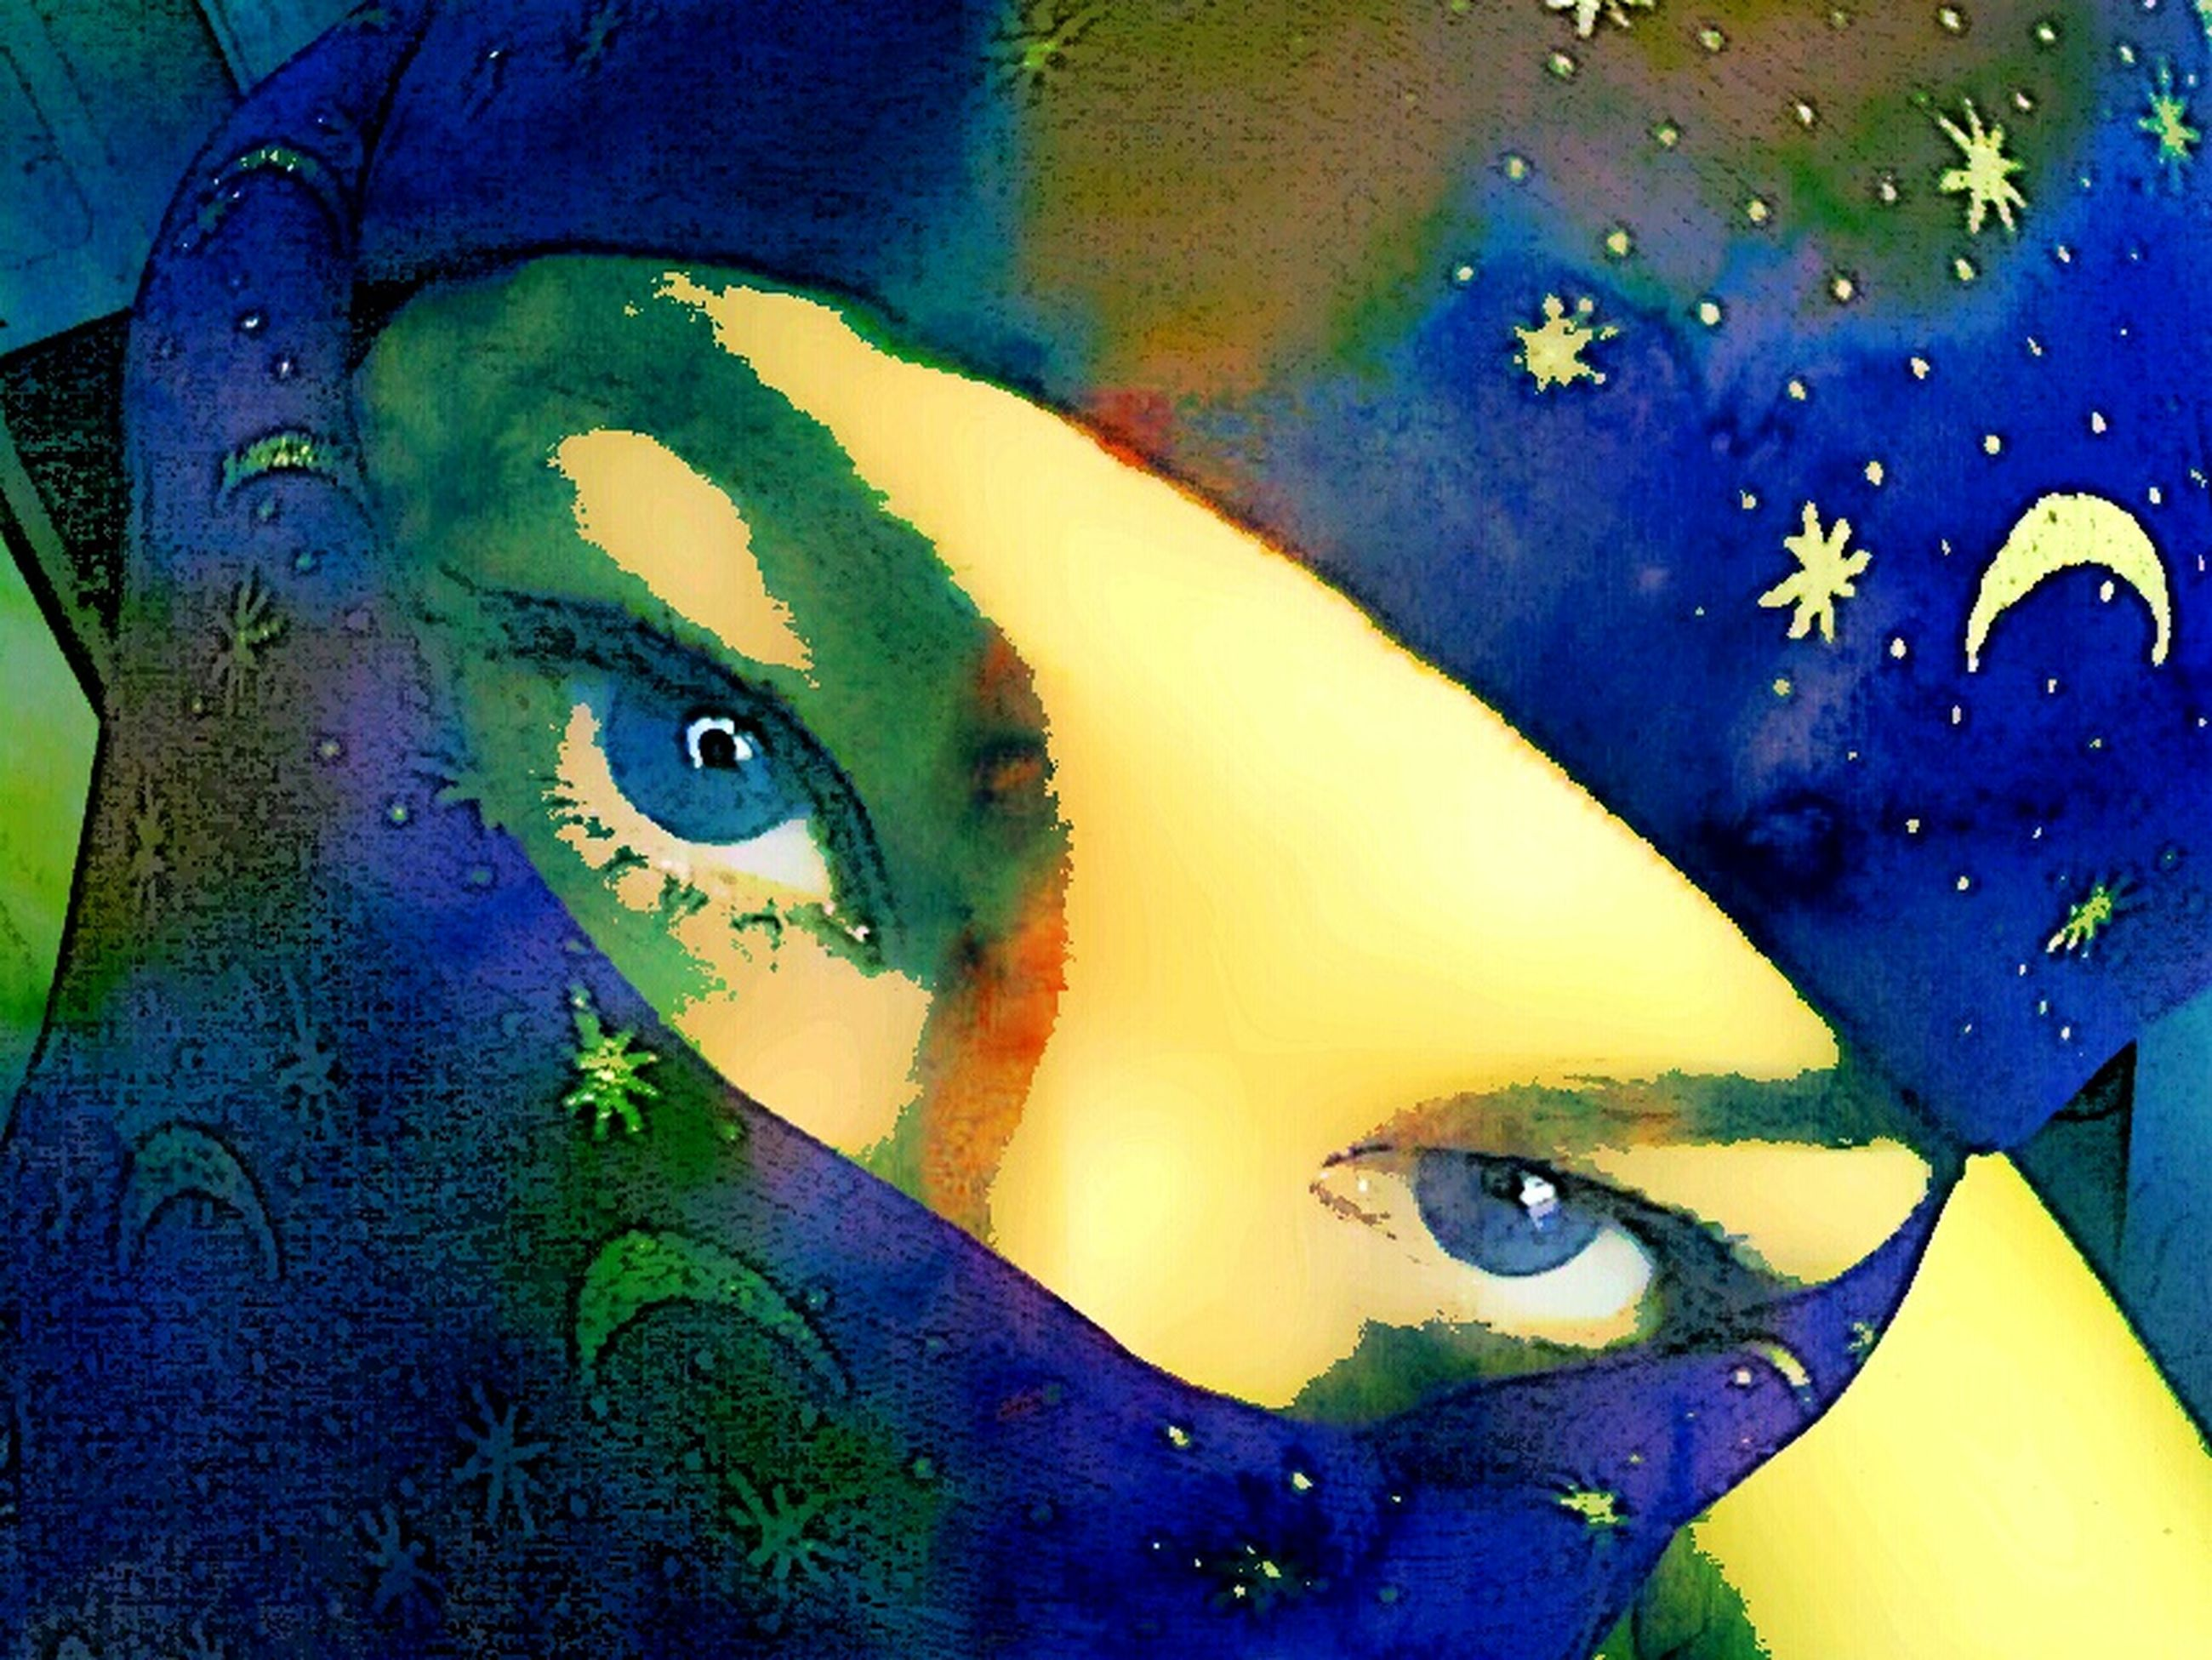 graffiti, art, creativity, art and craft, multi colored, close-up, wall - building feature, full frame, blue, paint, yellow, backgrounds, indoors, street art, painting, design, pattern, abstract, digital composite, human representation